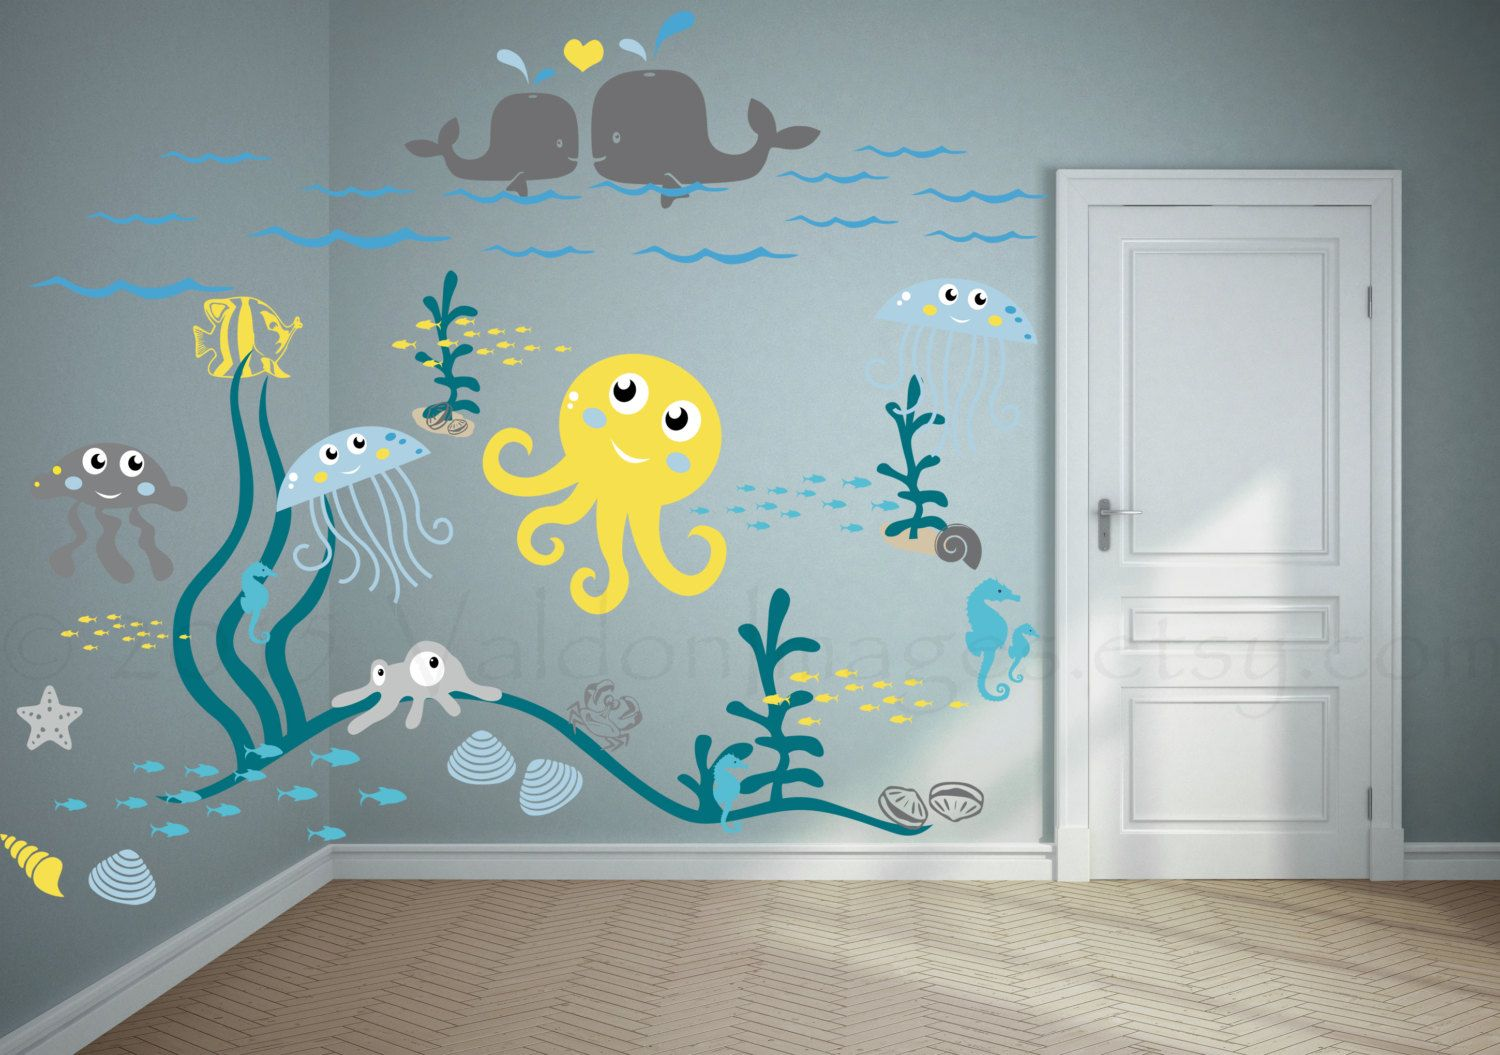 Bring The Ocean Life In With This Nursery Wall Decal. These Decals Feature  A Playful Ocean Scene Theme With Fun Colorful Sea Life For Your Babies  Nursery. Part 63